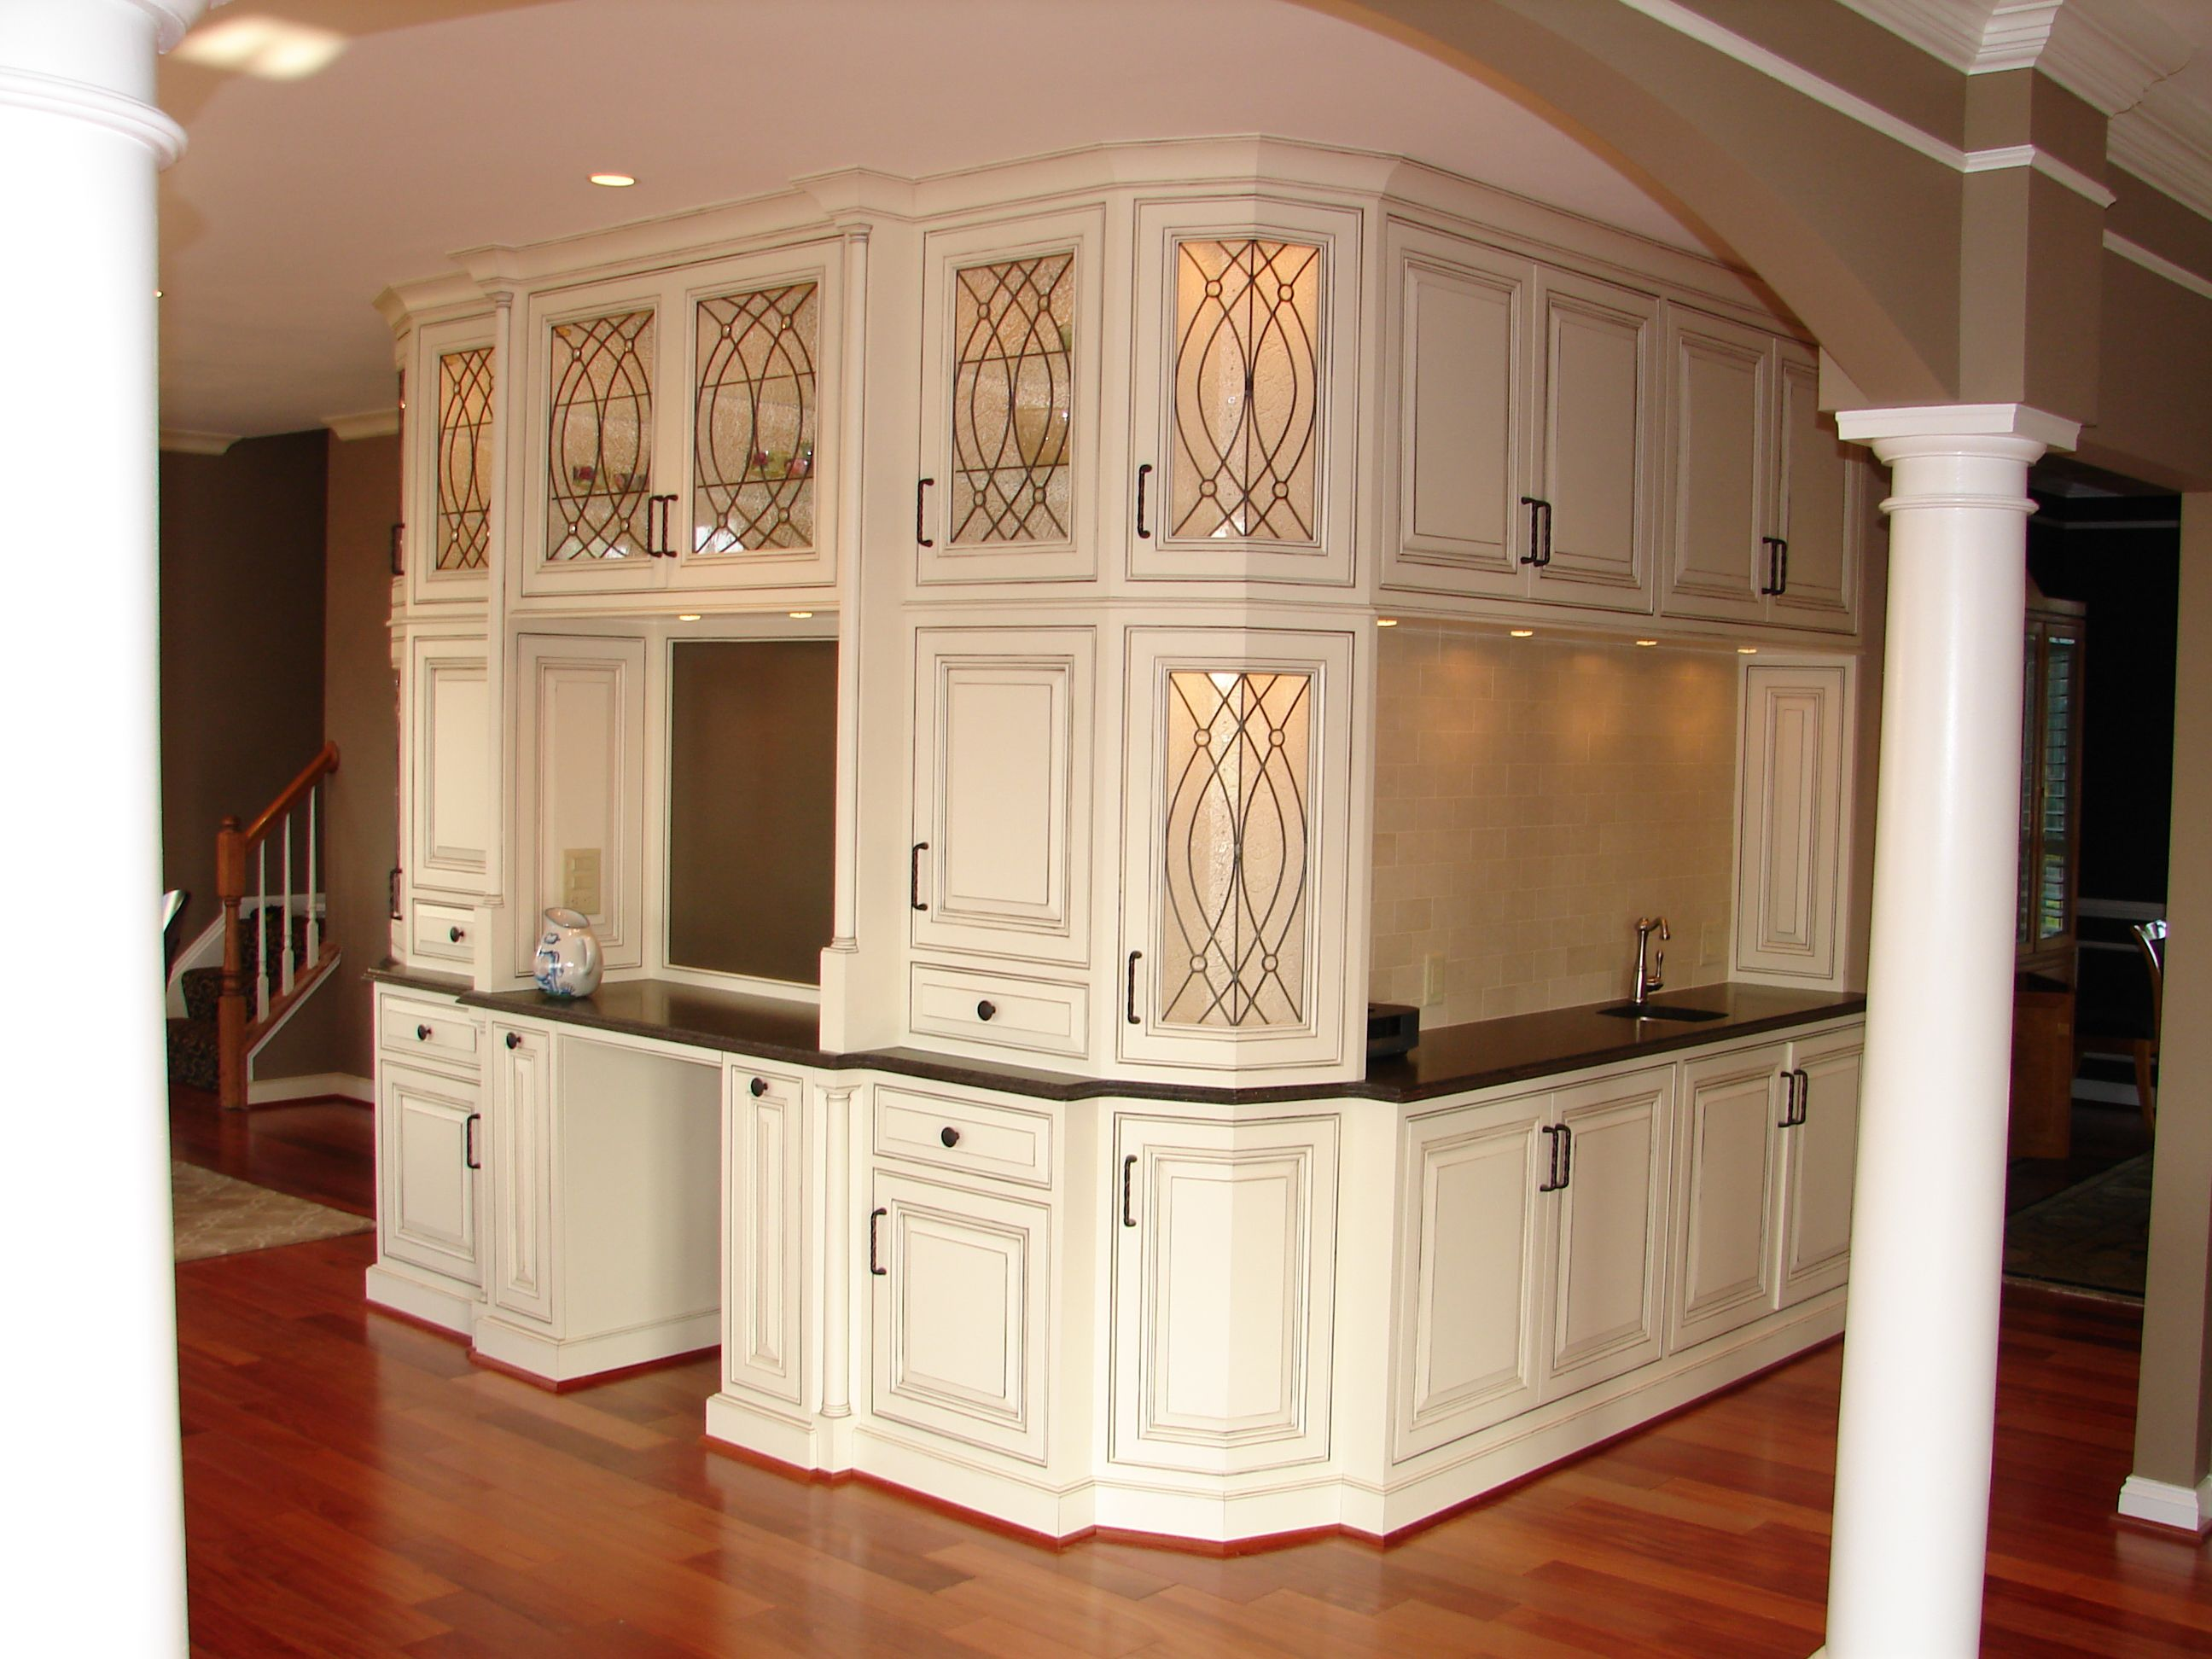 ... Renovations, Residential Design/Build Remodeling, Commercial Interior  Renovation Service   Talon Construction   Frederick County Maryland